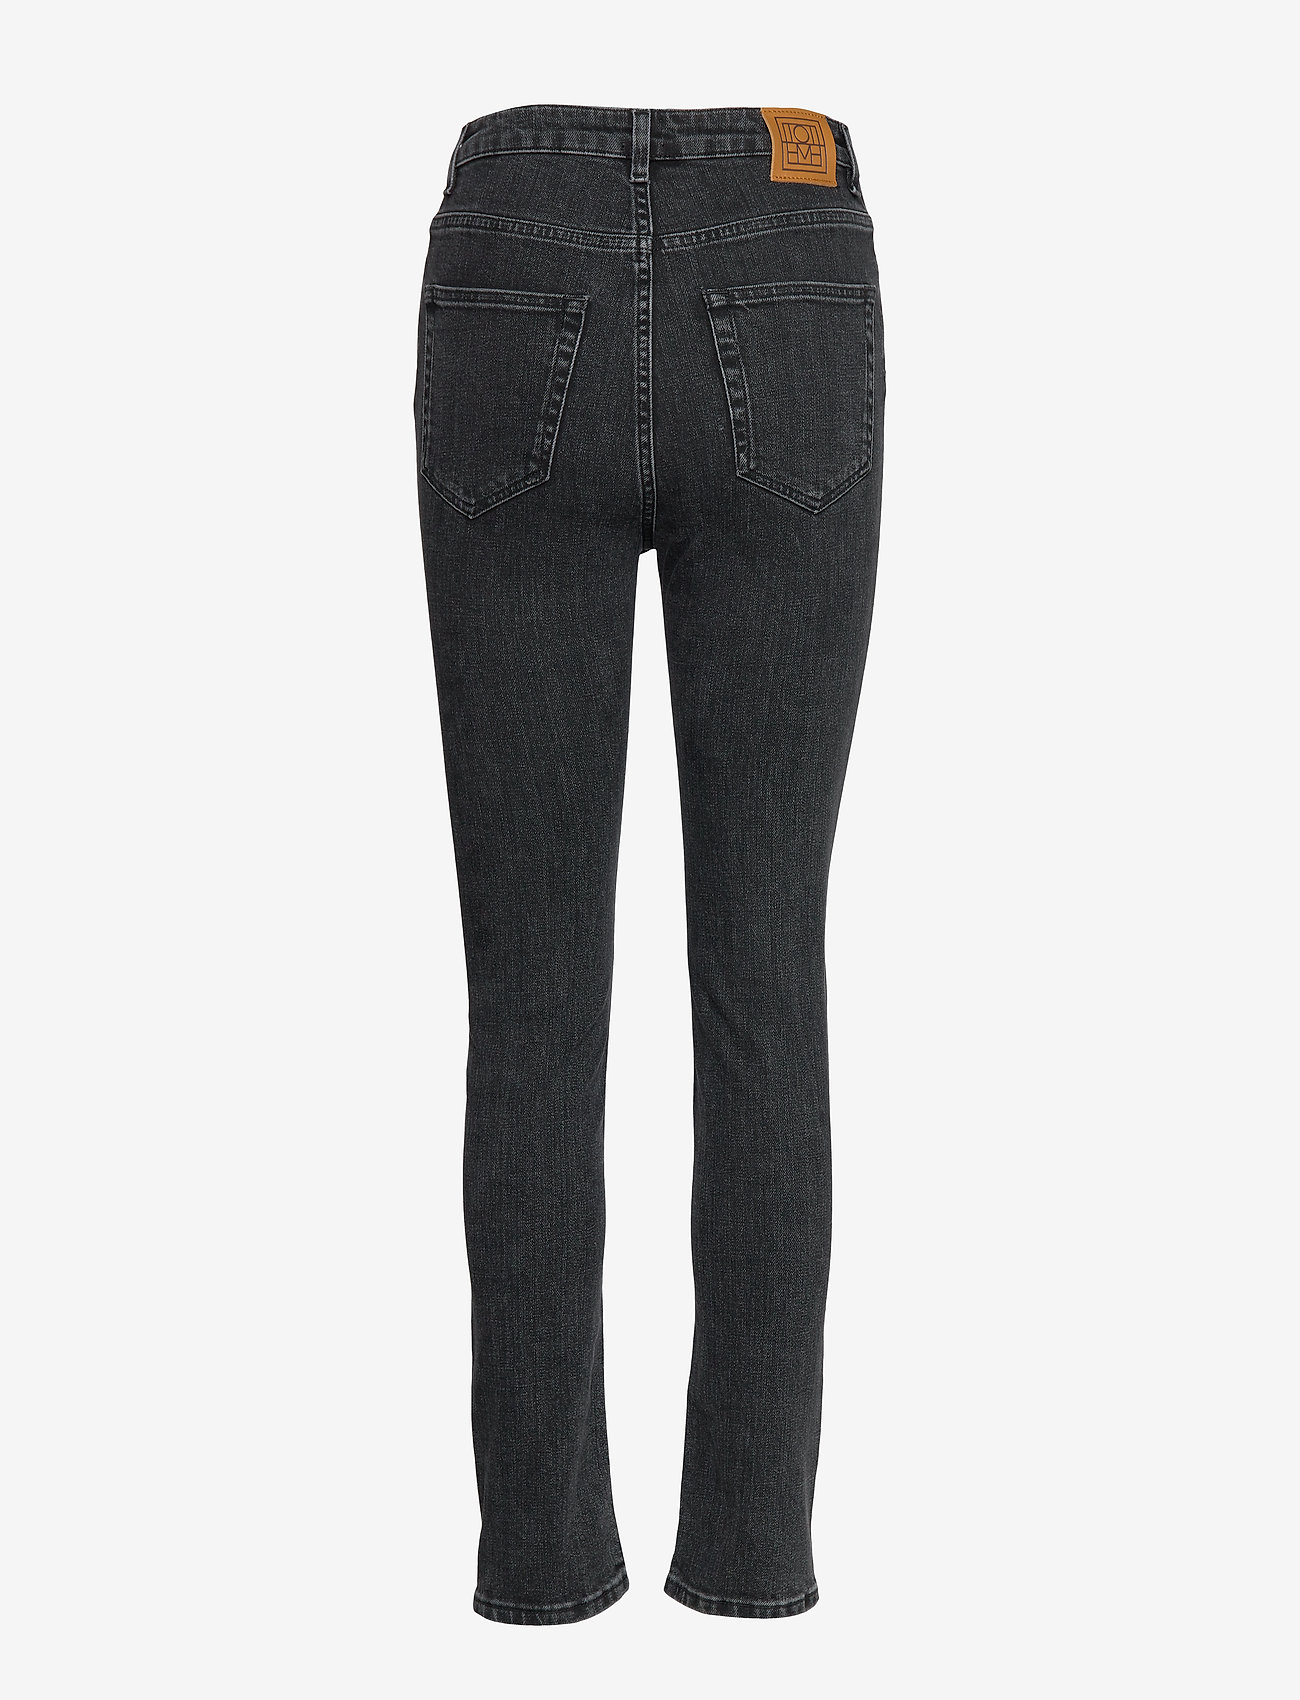 Totême - NEW STANDARD DENIM - slim jeans - grey wash 300 - 1